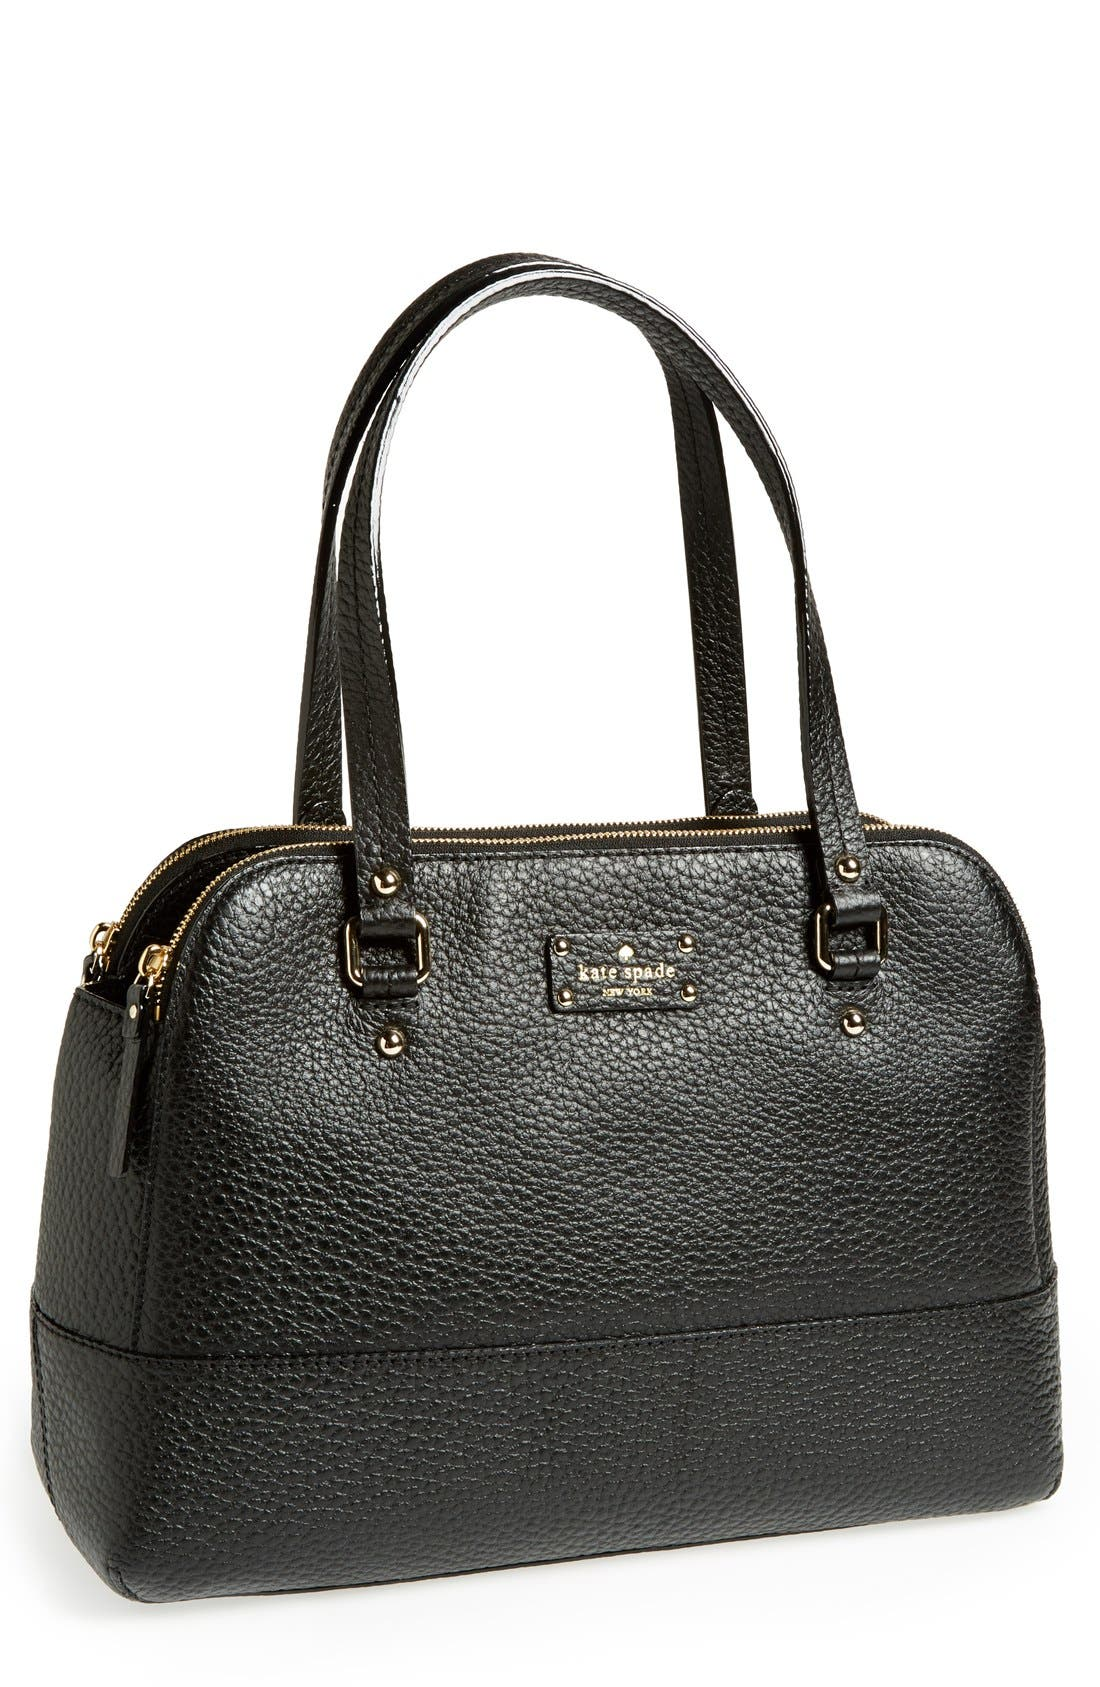 Main Image - kate spade new york 'grove court - lainey' leather tote